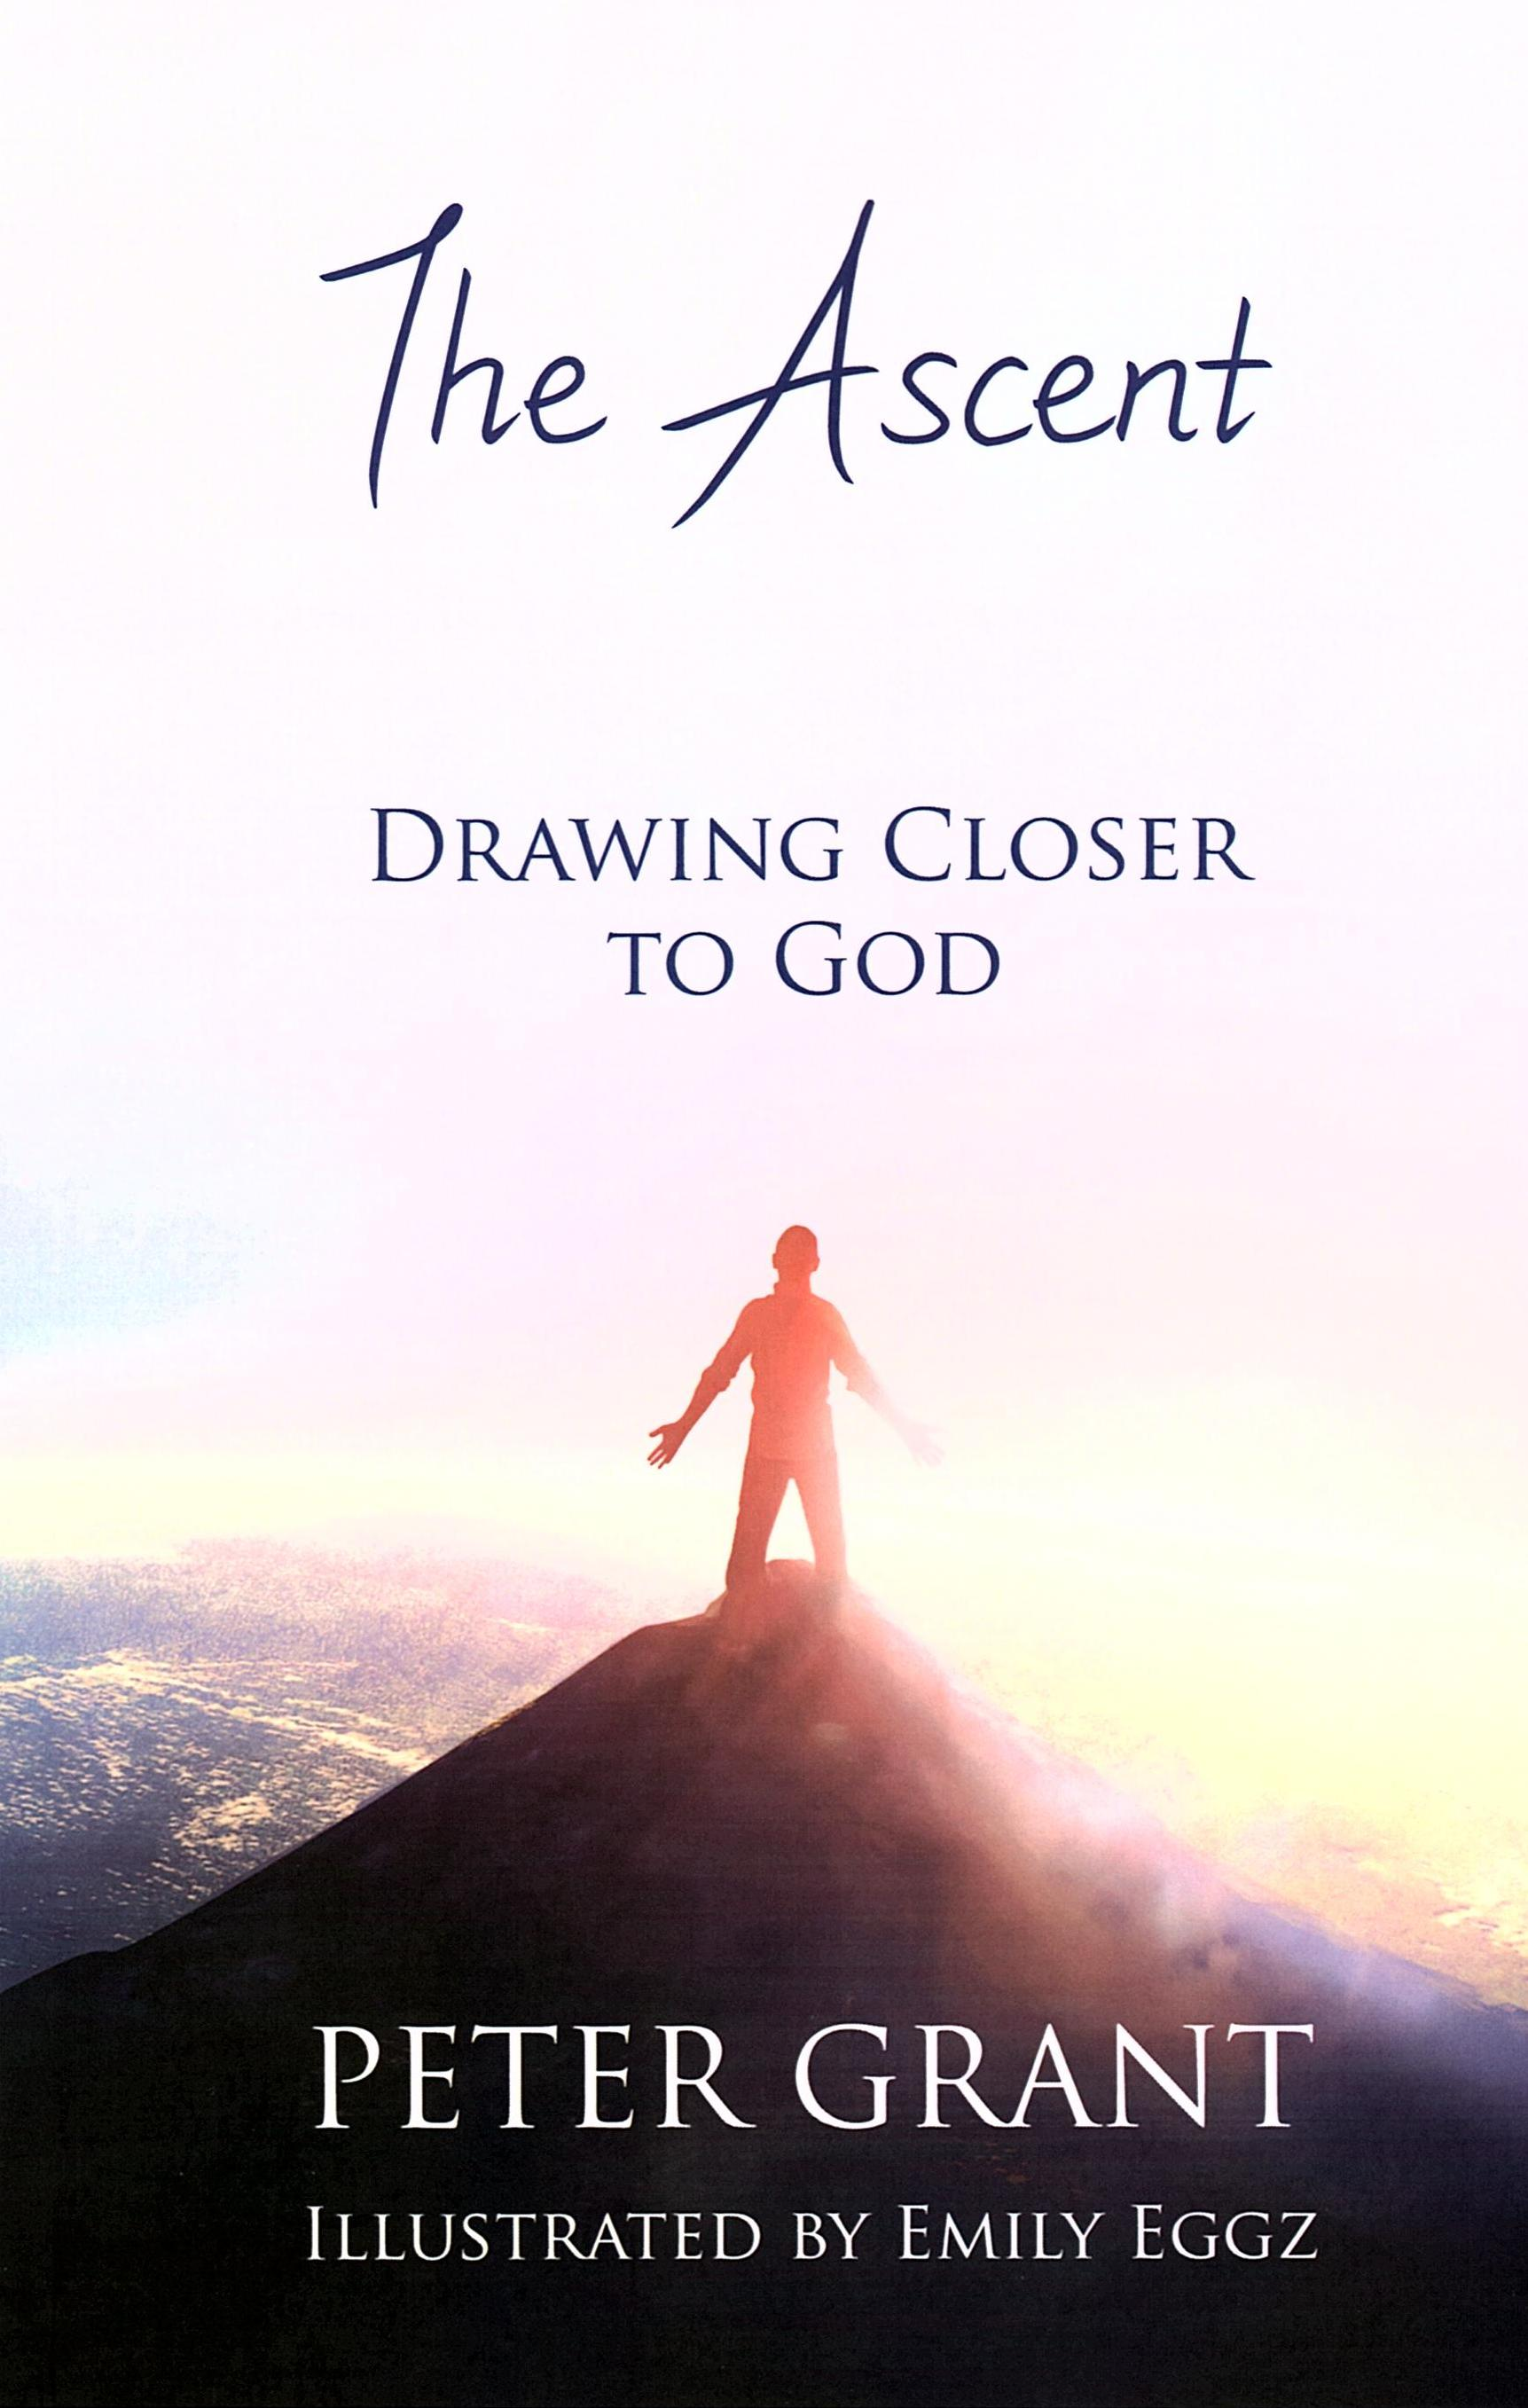 More information on The Ascent Drawing Closer To God